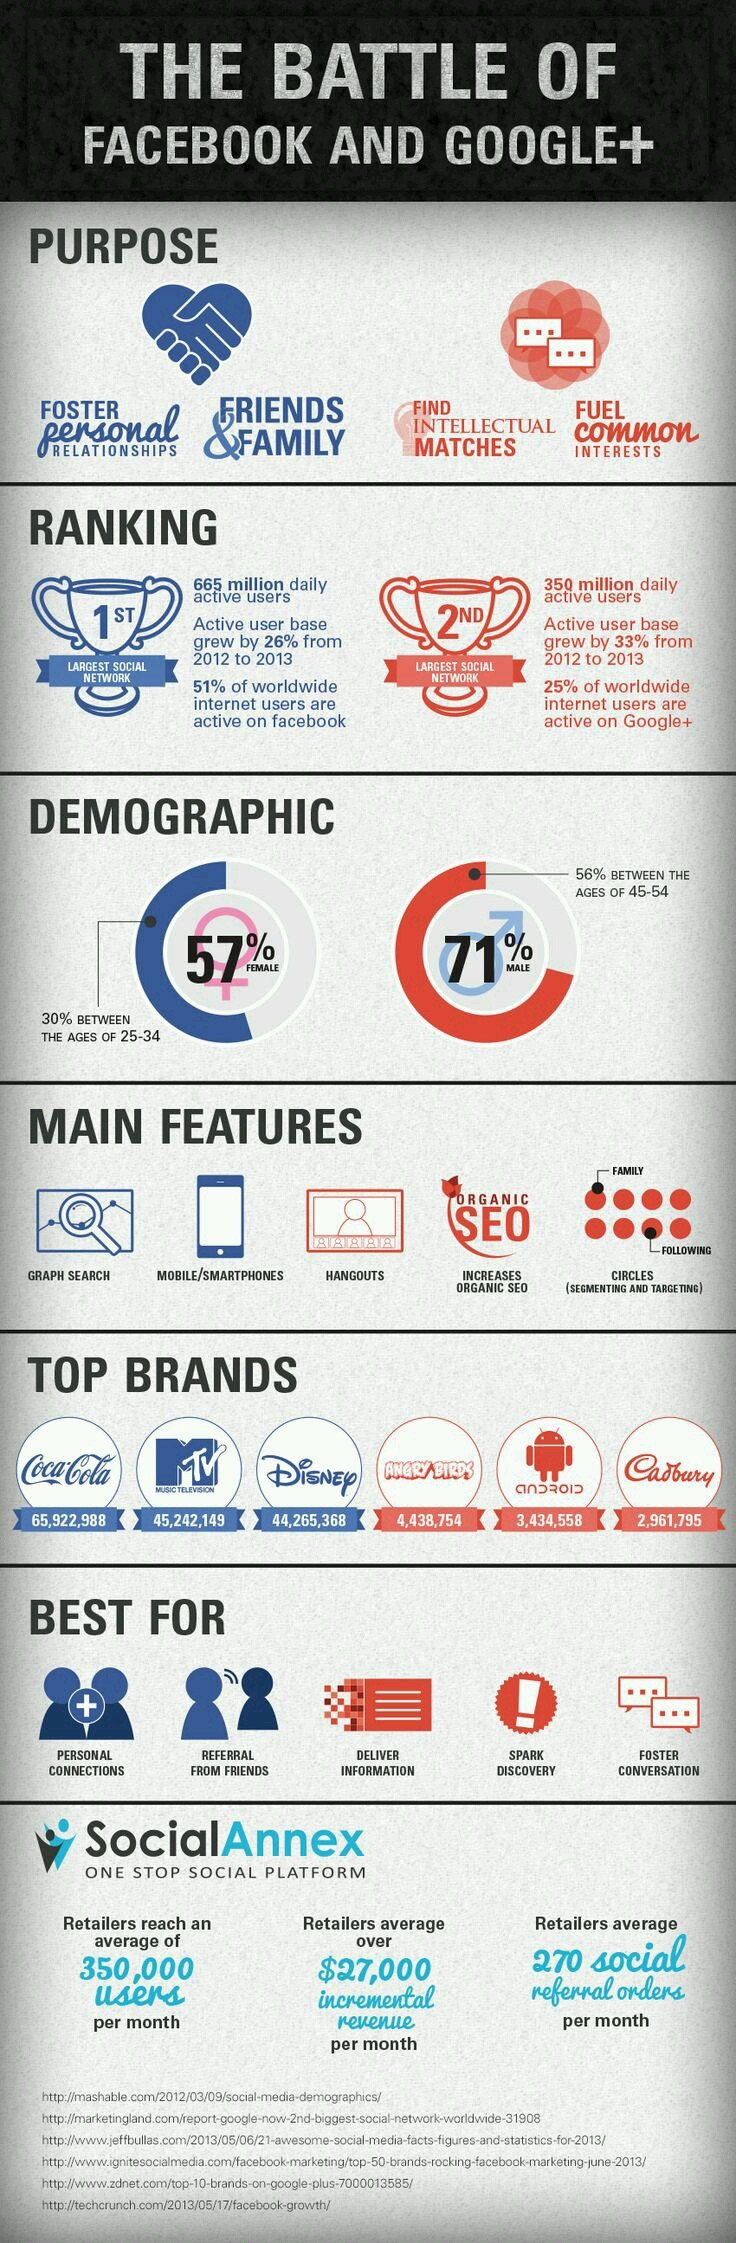 The battle of Facebook and Google+ #infographic